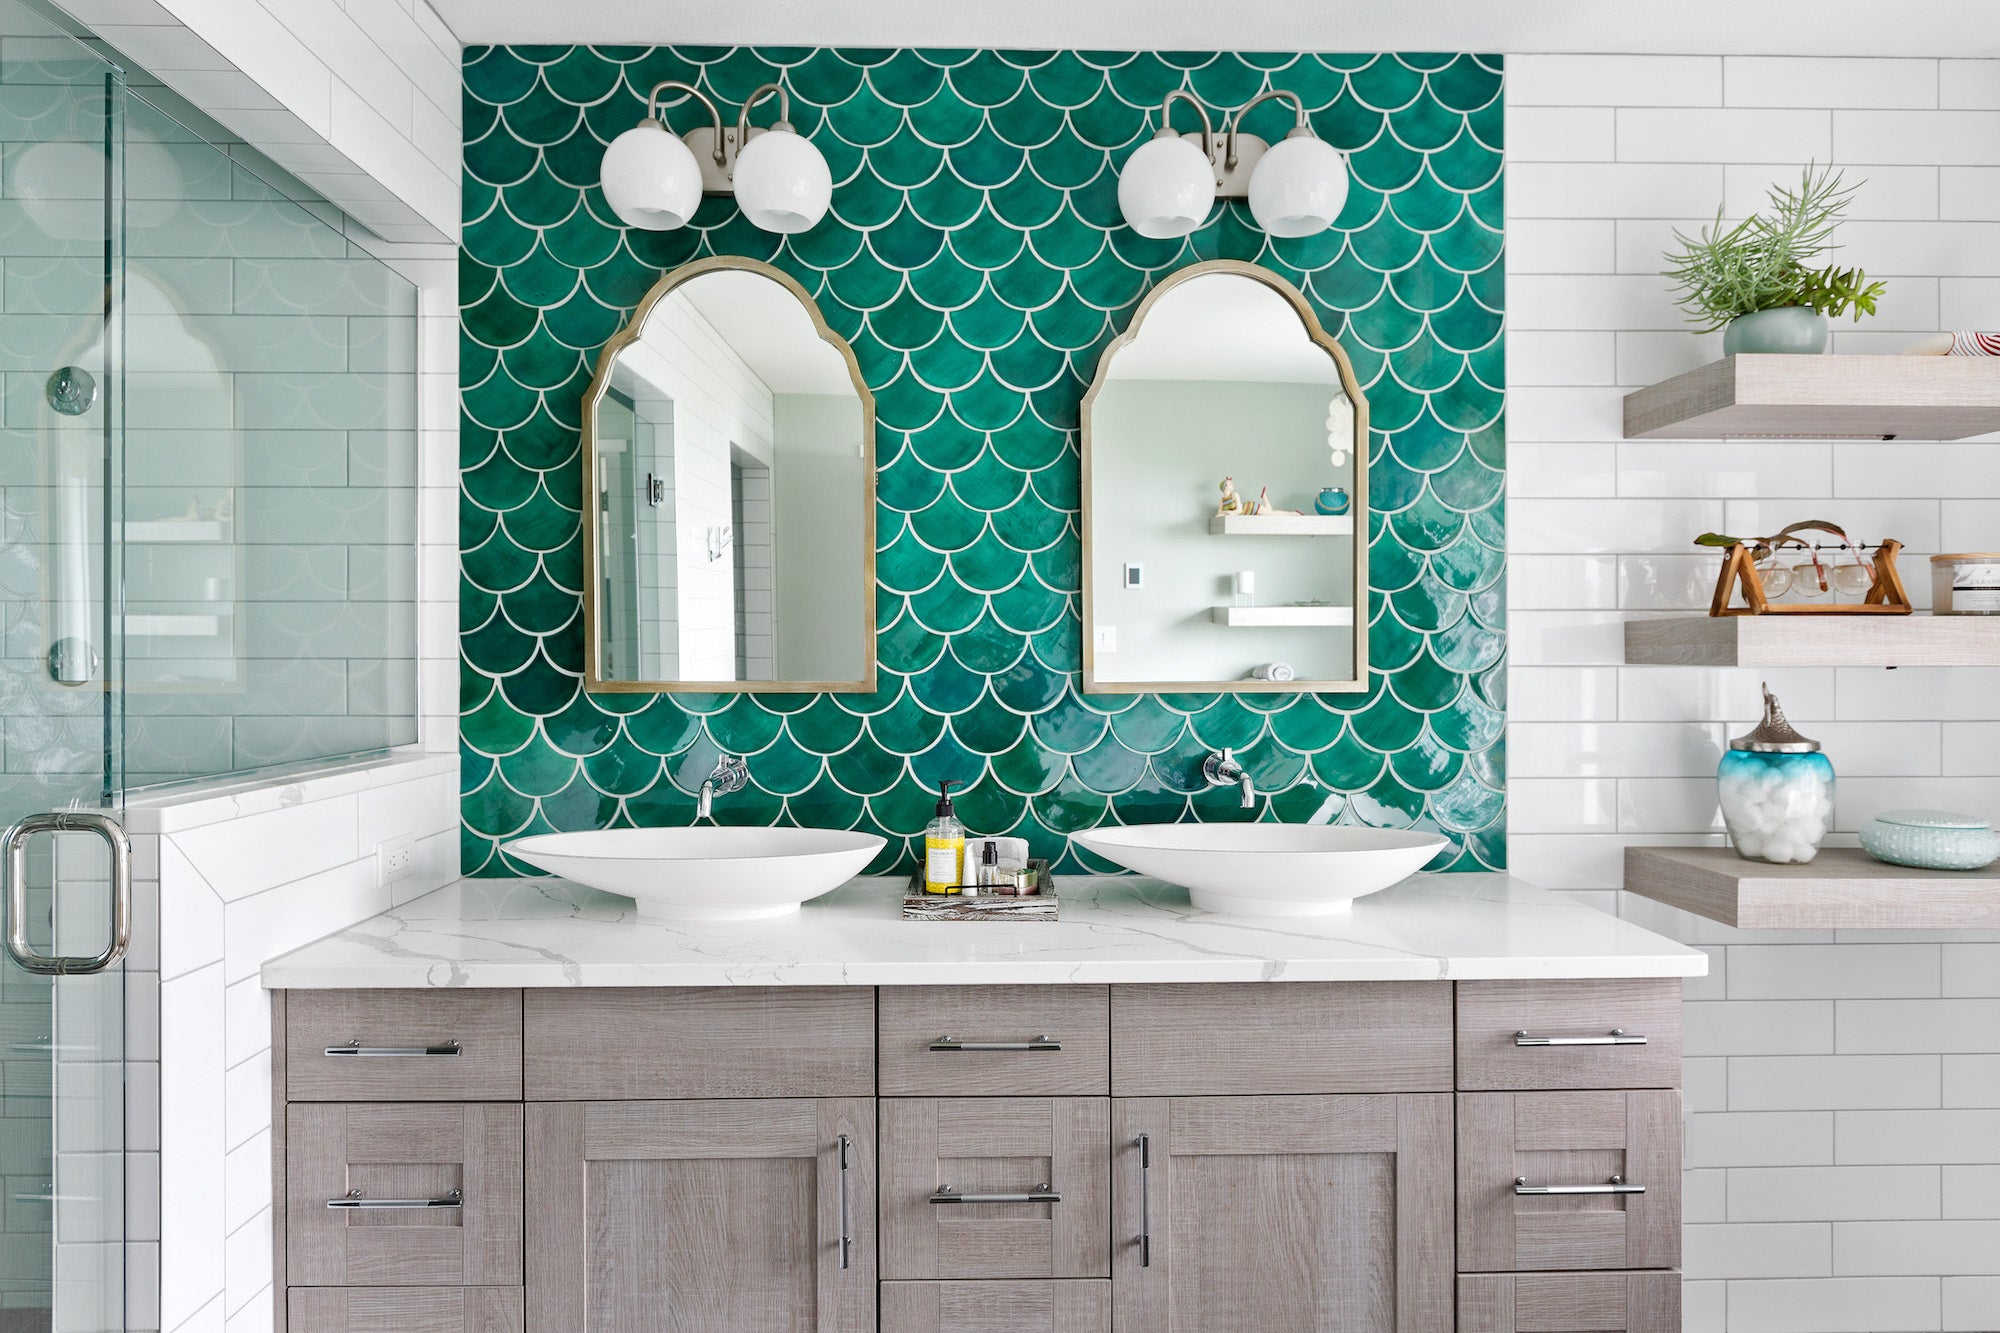 Moroccan Fish Scale Teal Bathroom Backsplash